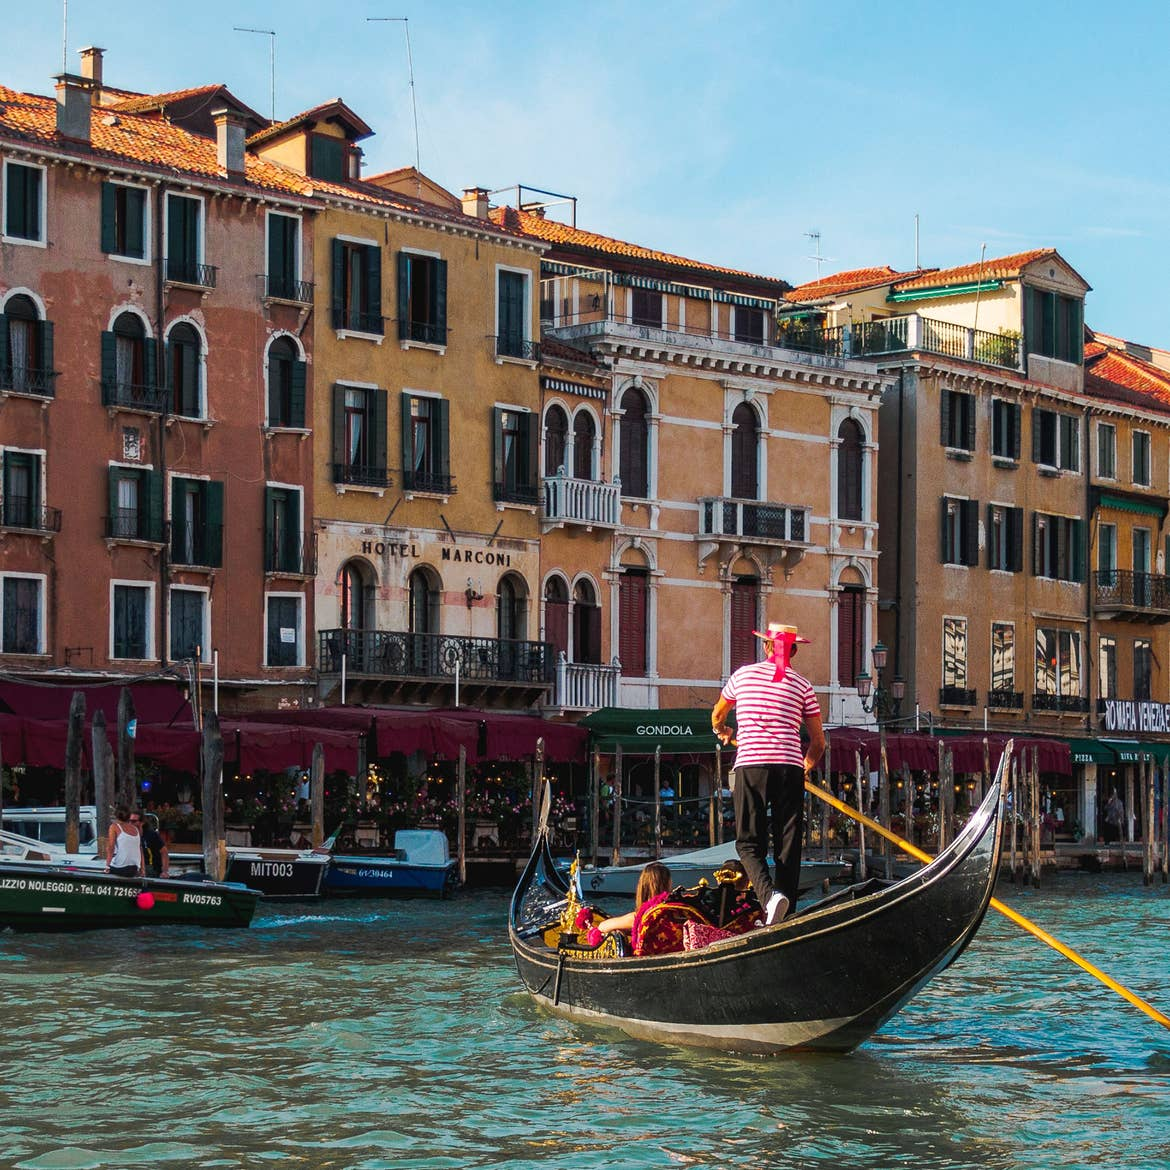 A Gondolier wearing a straw hat and striped red and white shirt paddles guests along the river in Venice, Italy.